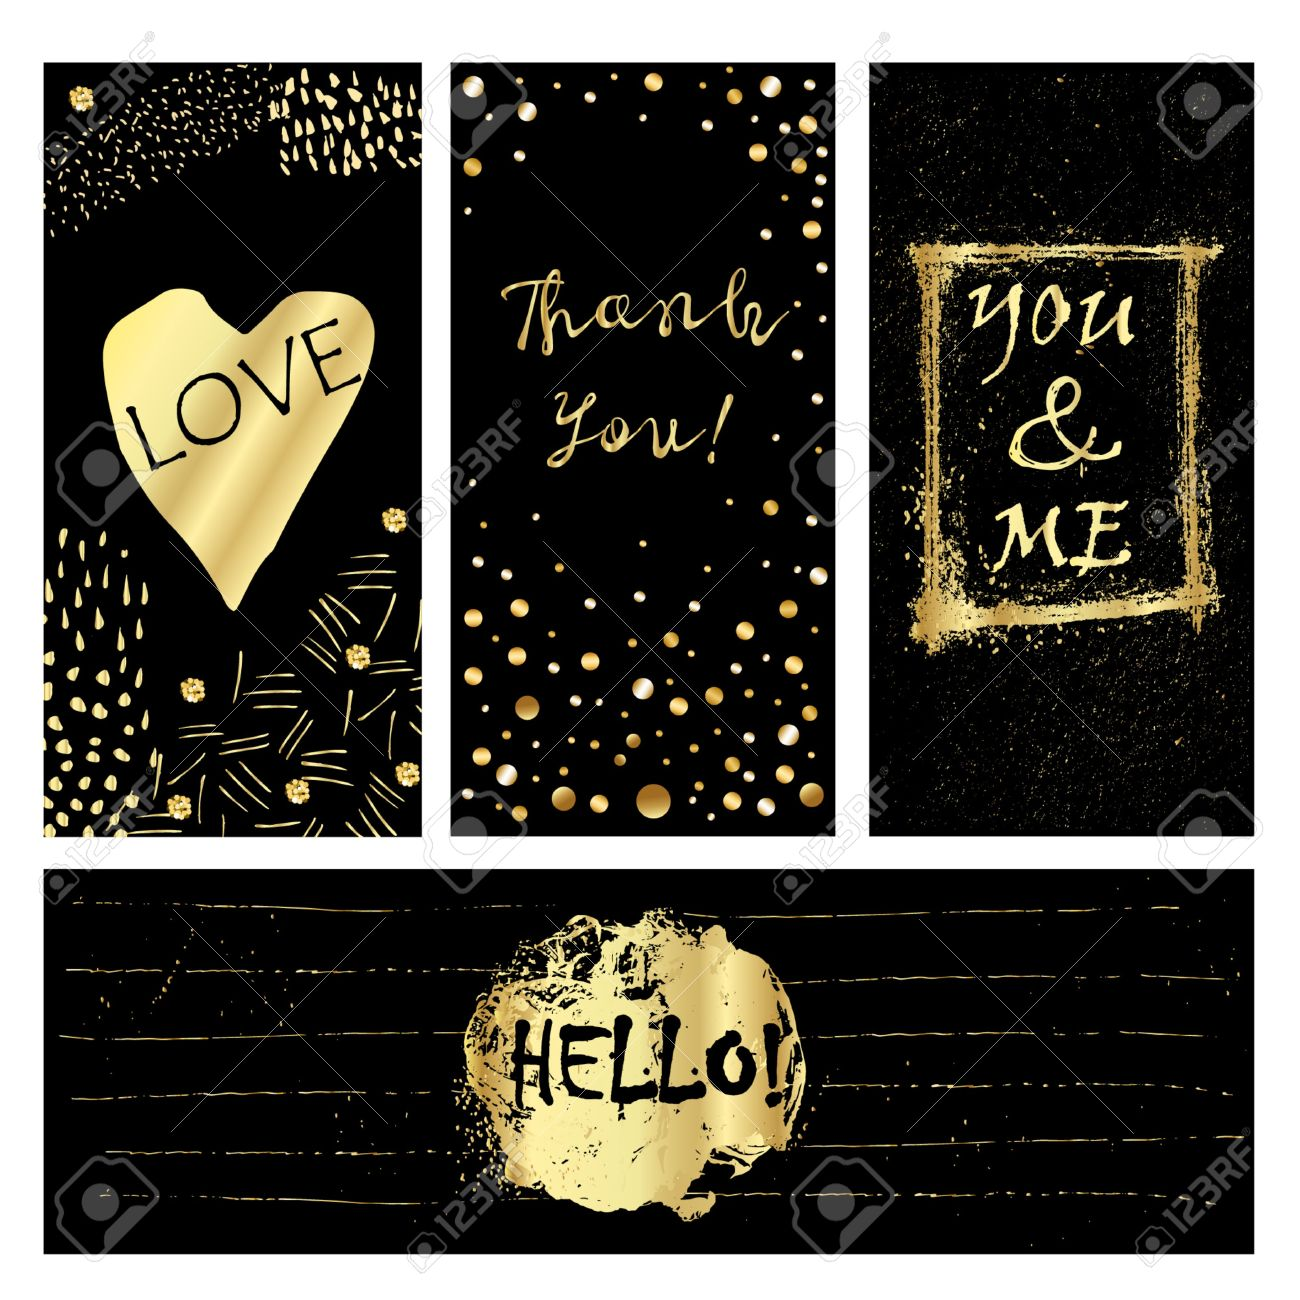 Cute cards with golden confetti and foil elements. Brush painted backgrounds. Use them for valentines day, birthday, save the date invitation. - 47400019